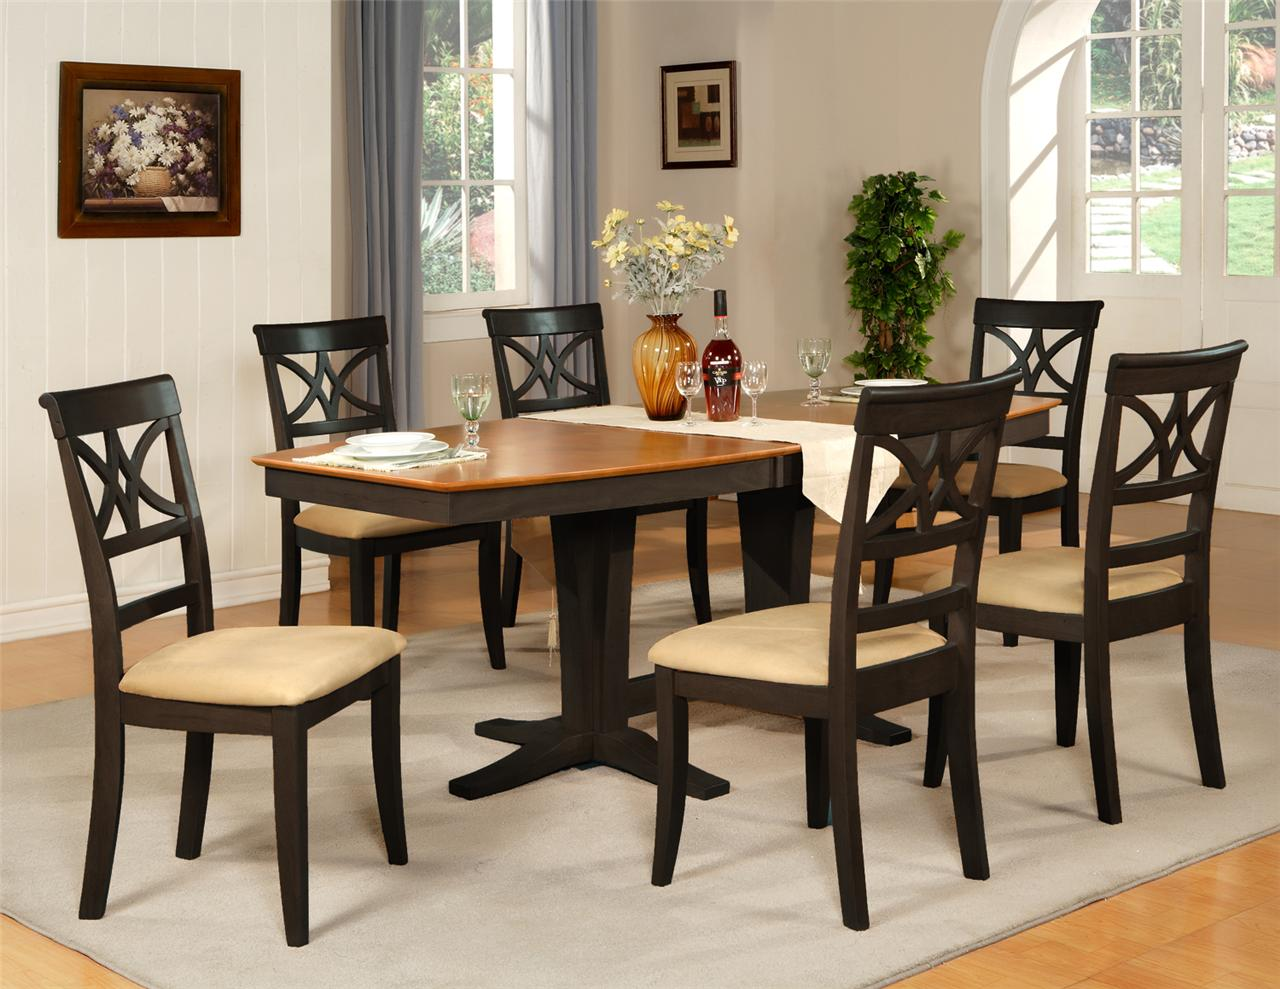 Dining room table with chairs 2017 grasscloth wallpaper - Black dining room tables ...